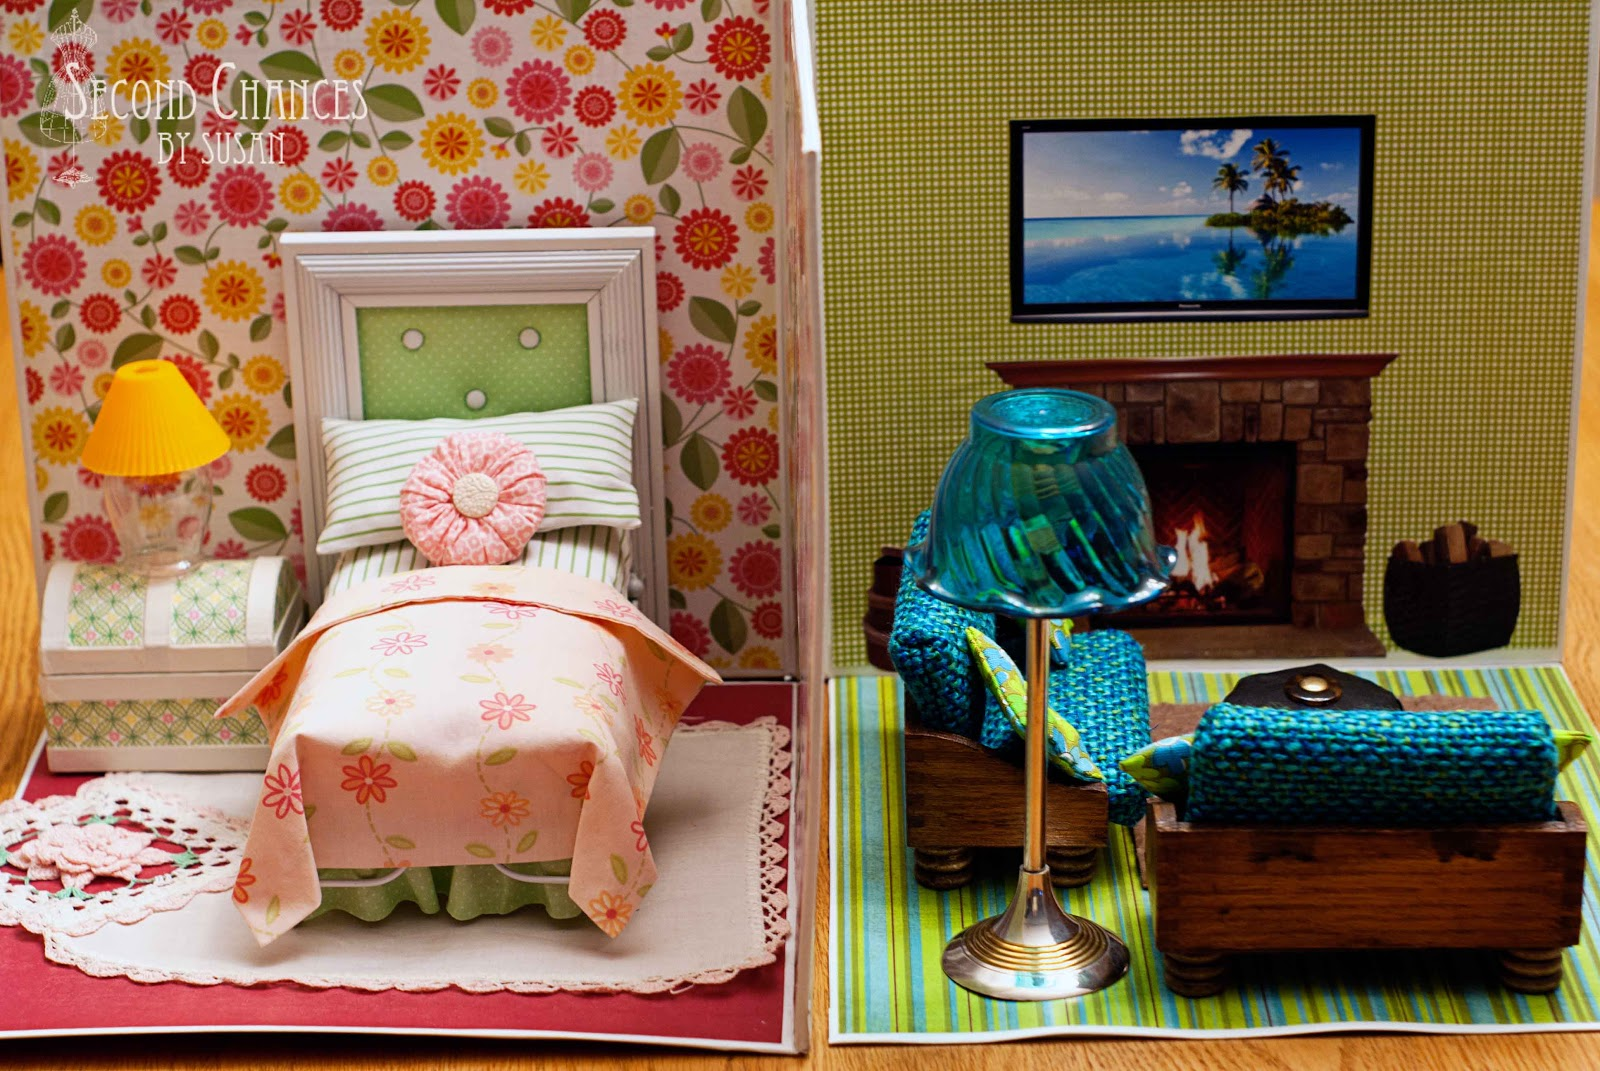 Best Second Chances By Susan Collapsible Dollhouse This Month